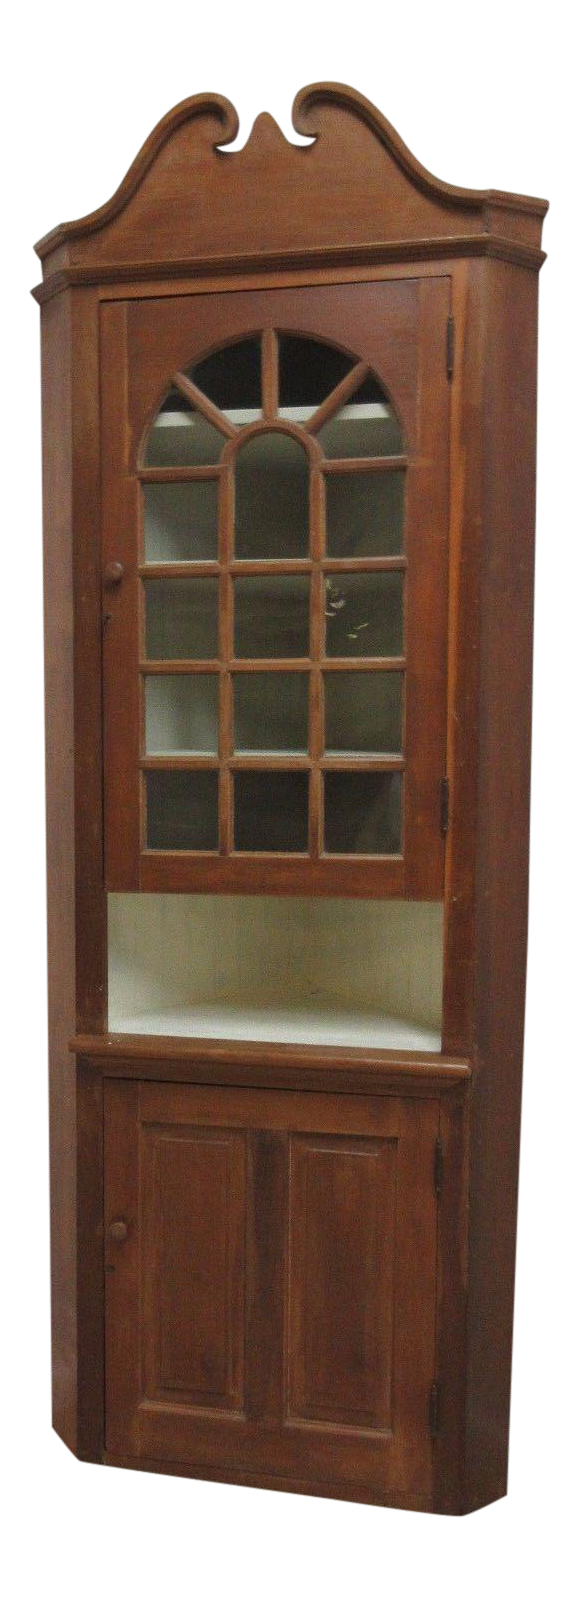 Antique Early American Corner Cupboard